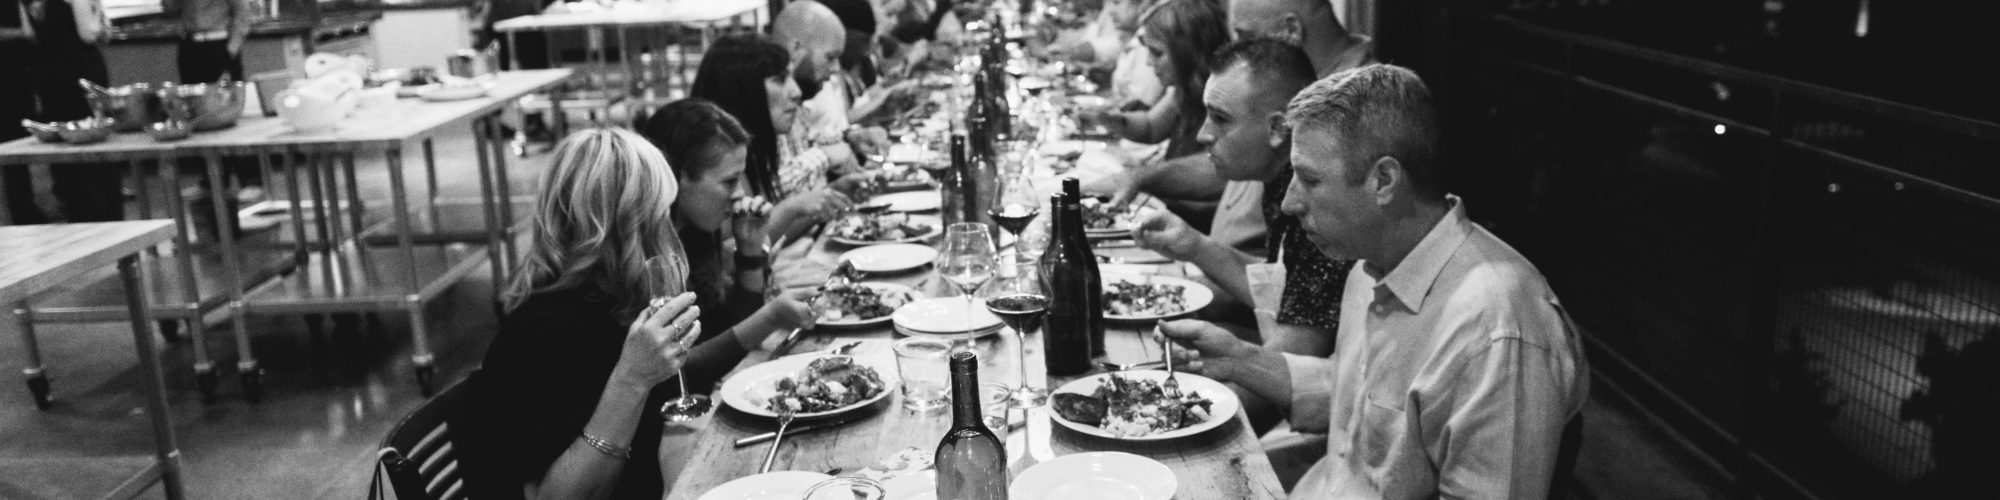 Dining Cropped